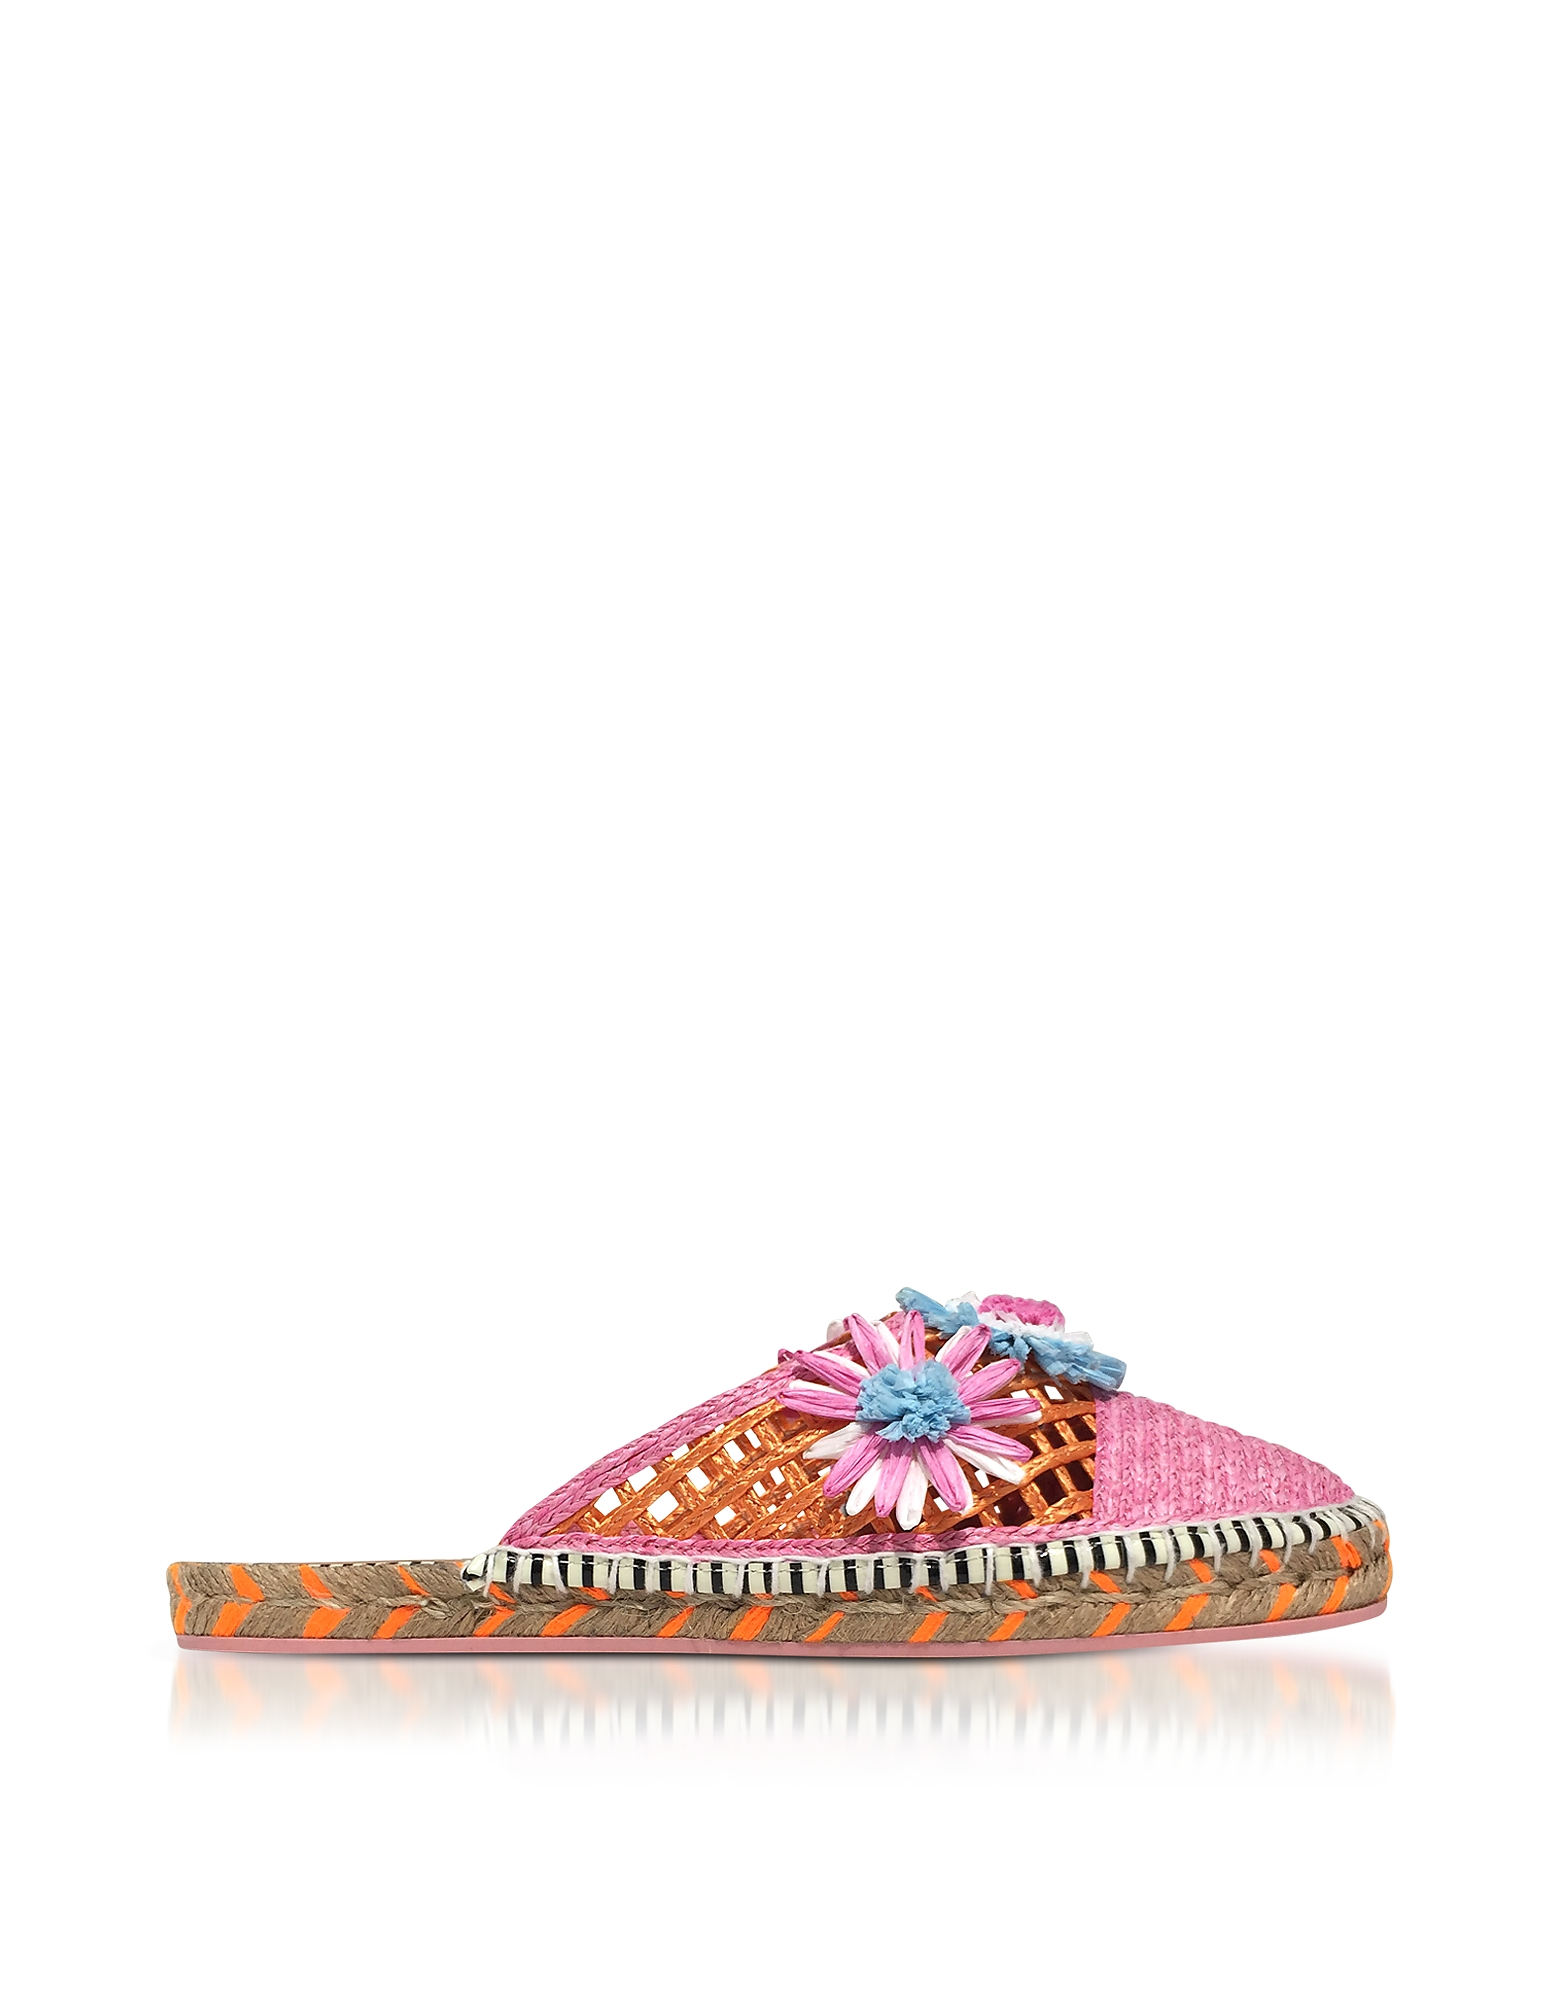 Sophia Webster Shoes, Jute and Leather Tansy Espadrille Slippers